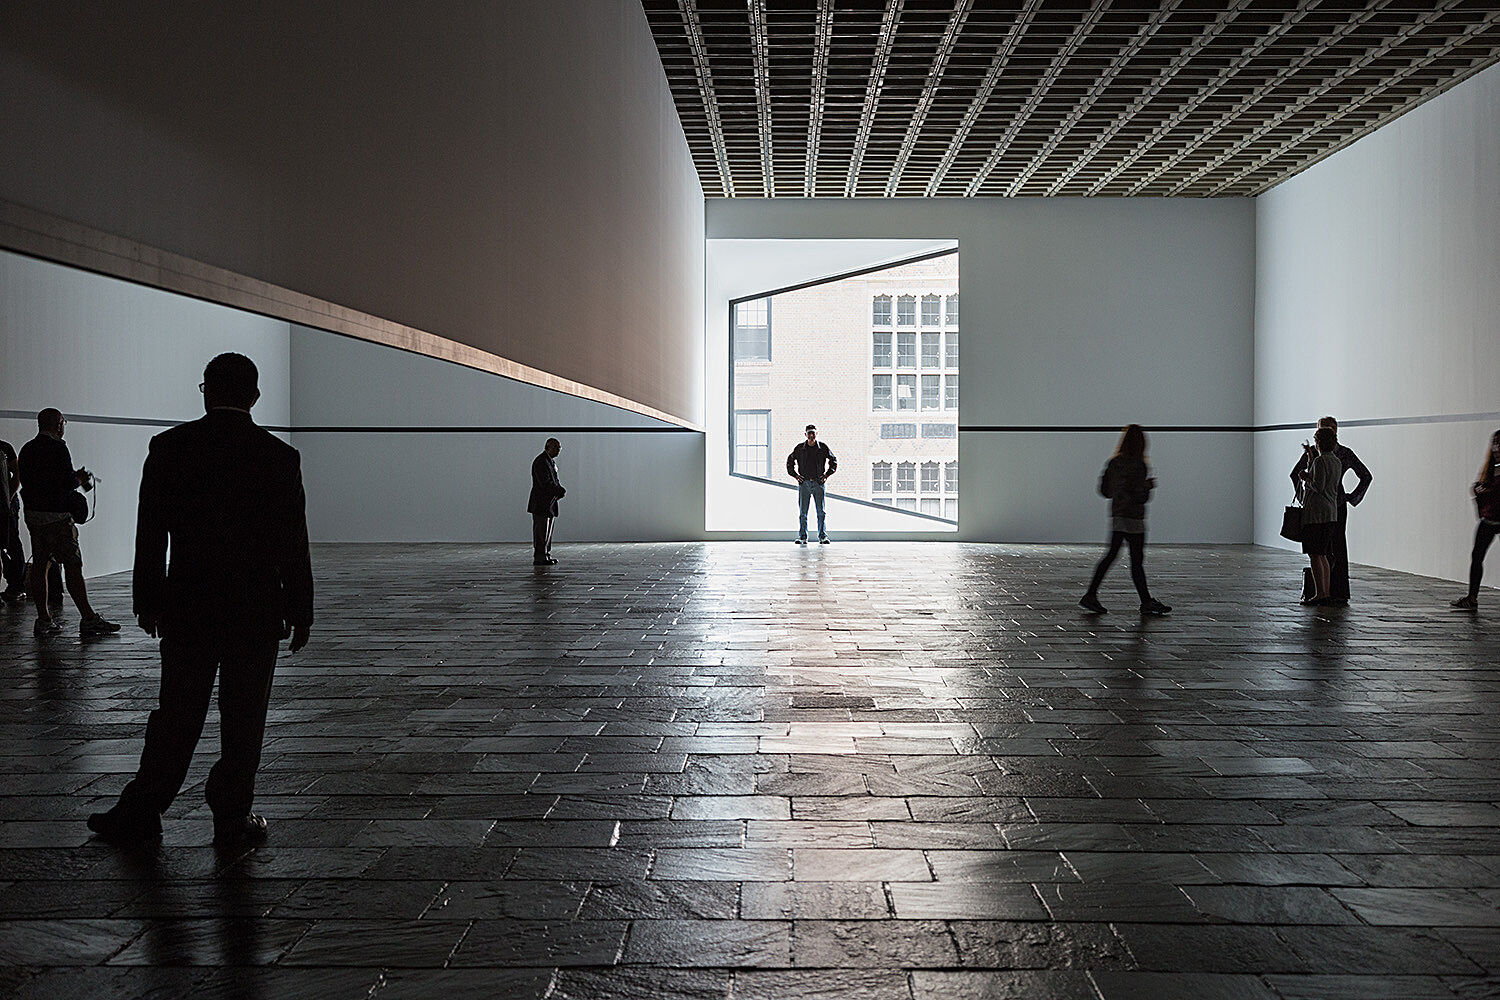 A person stands in front of a window while others stand in the gallery.